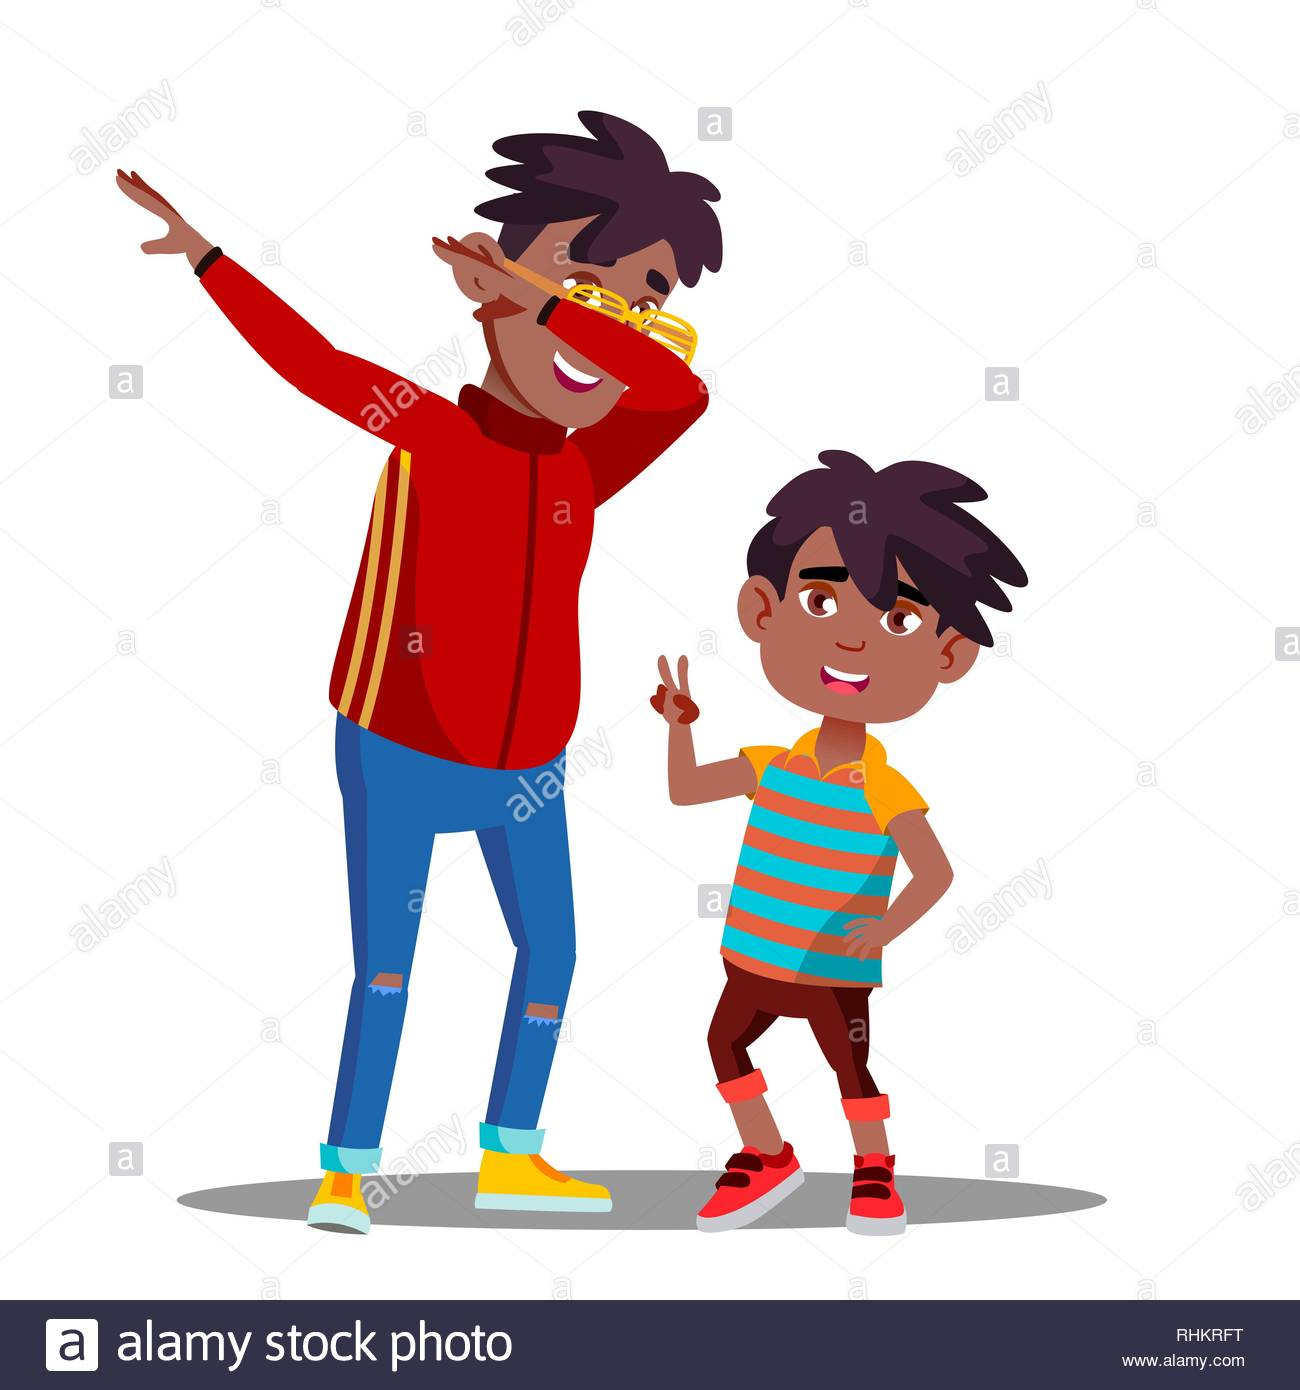 Two Little Afro American Boys With Dreadlocks Dancing To Music.